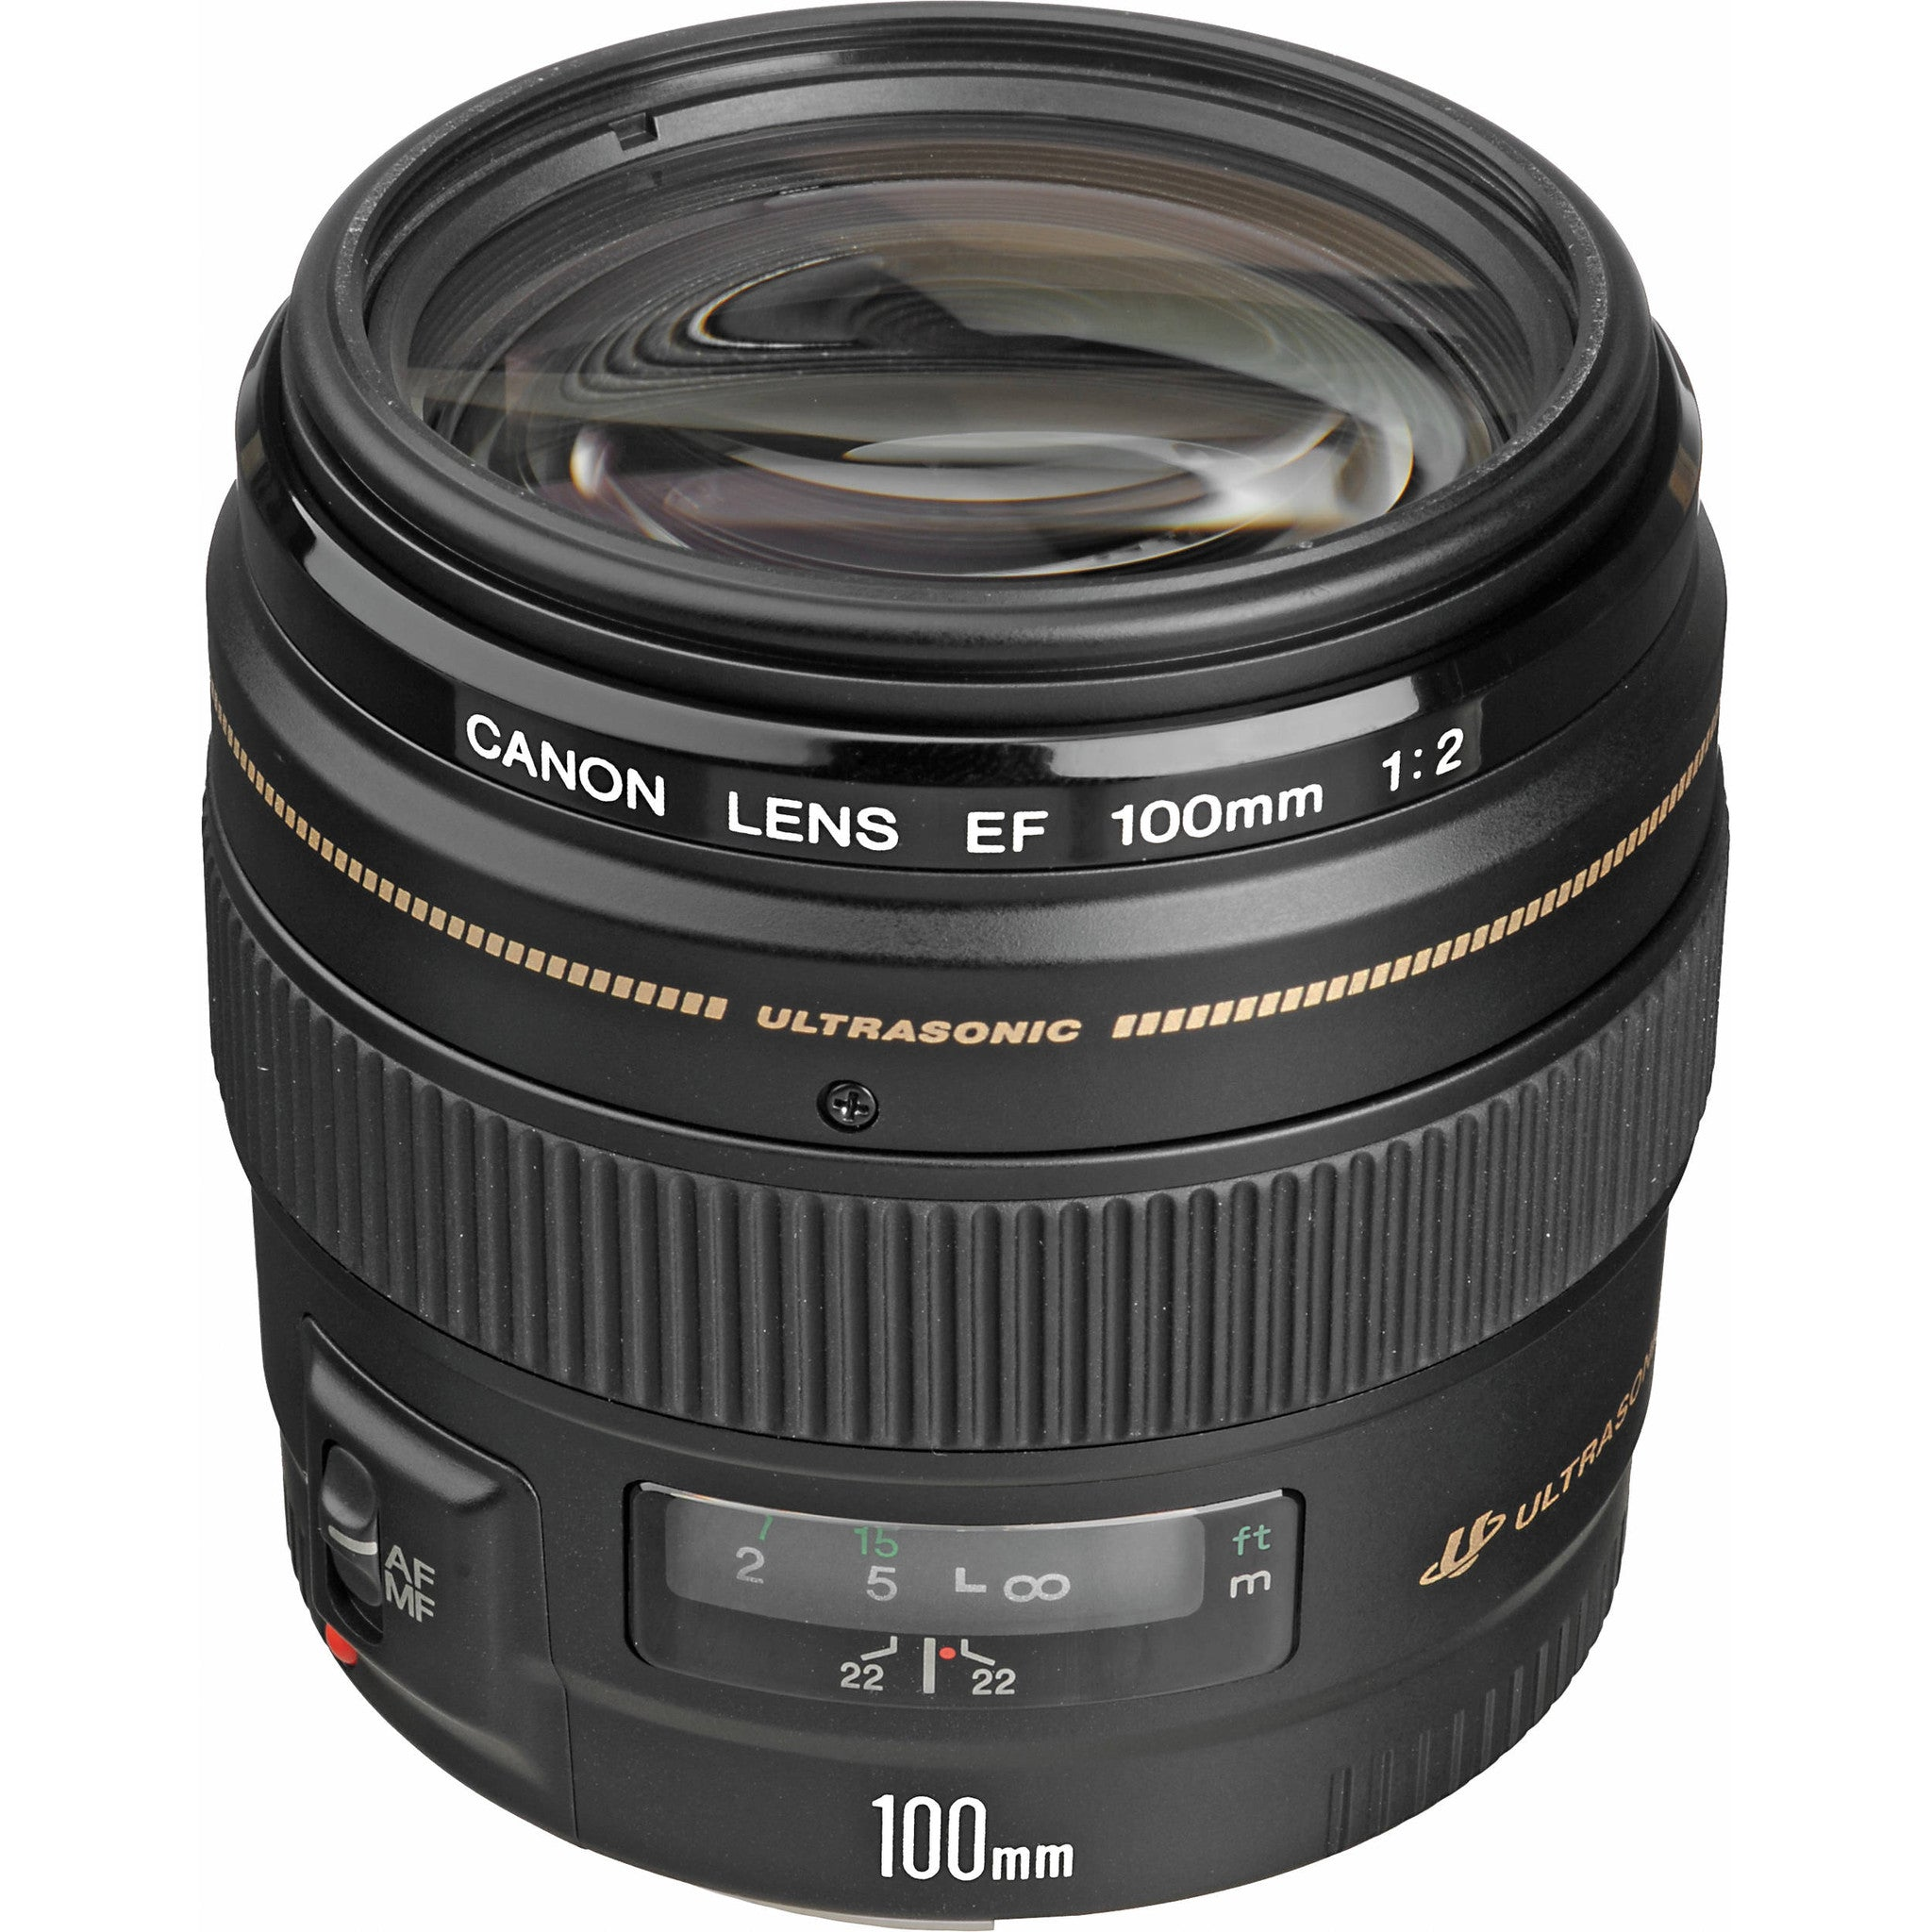 Canon EF 100mm f/2 USM - Photo-Video - Canon - Helix Camera